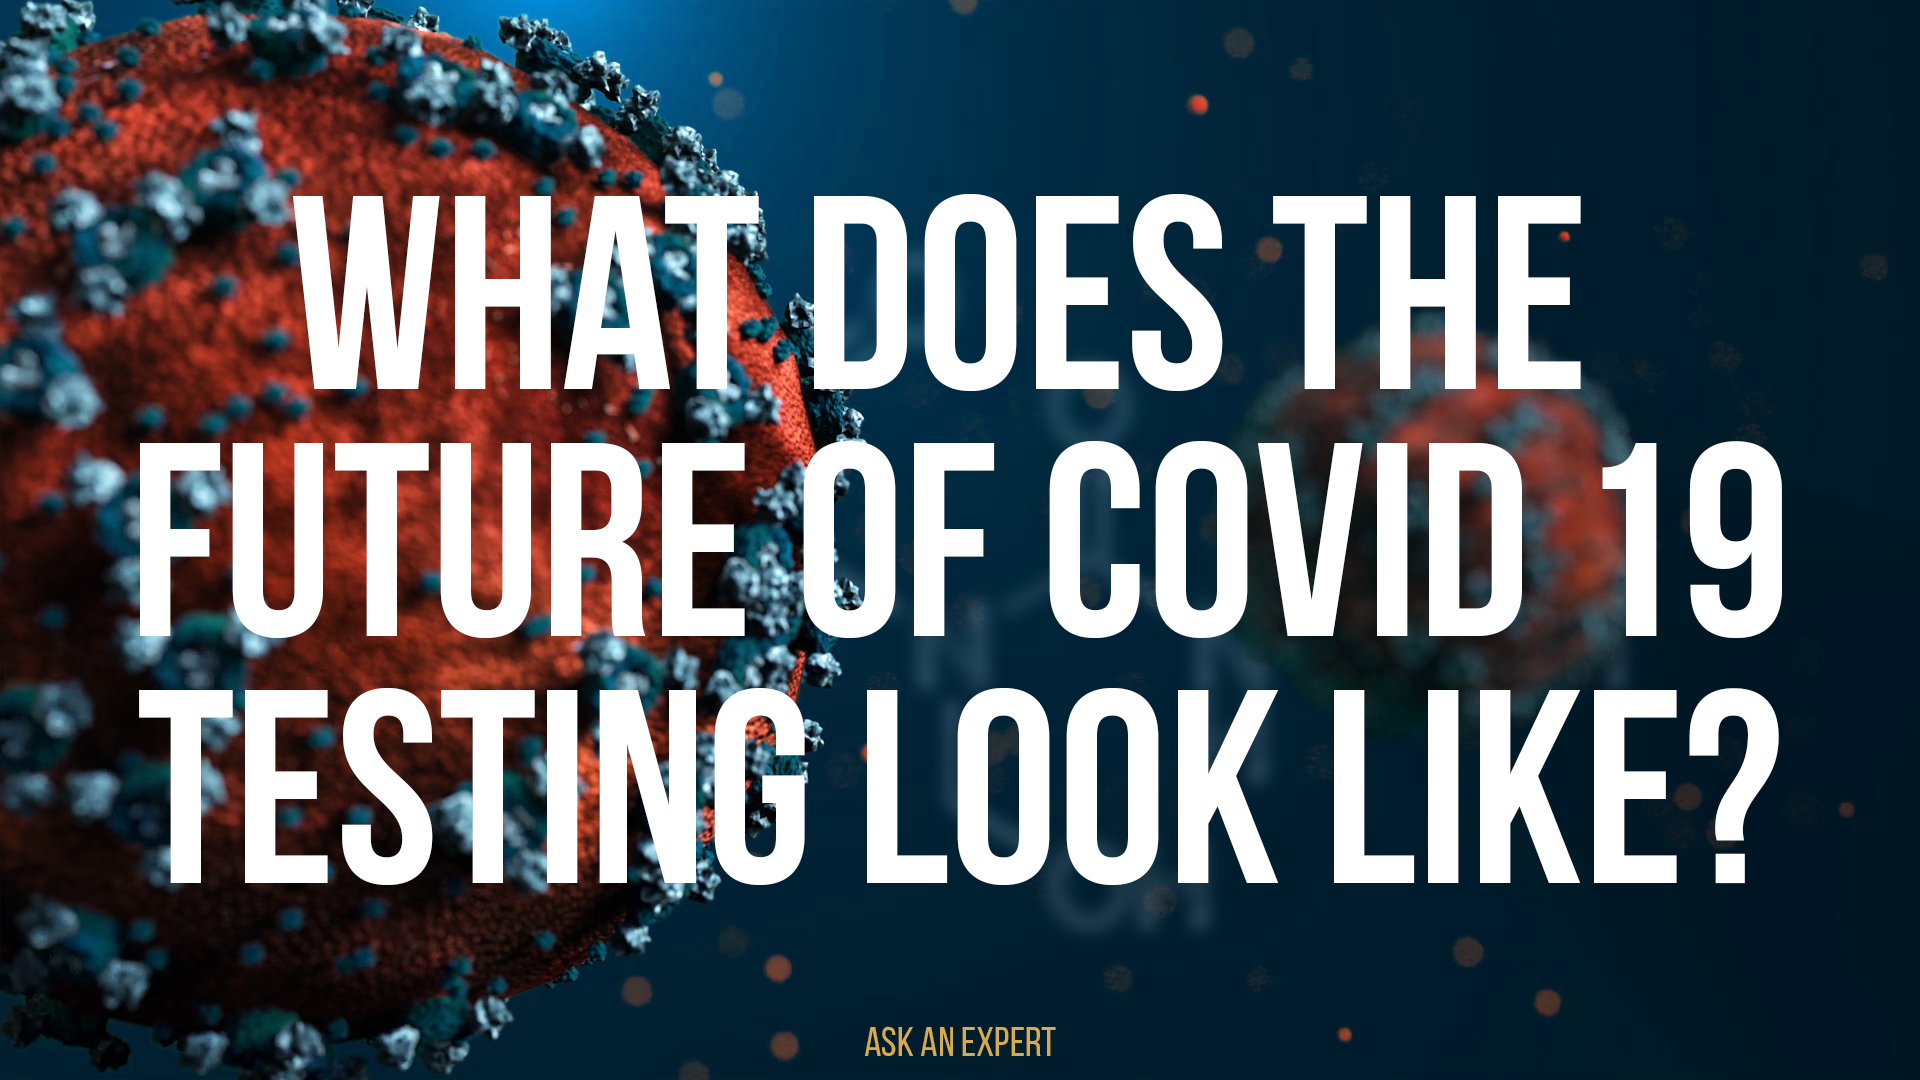 Ask an Expert: What does the future of COVID-19 testing look like?